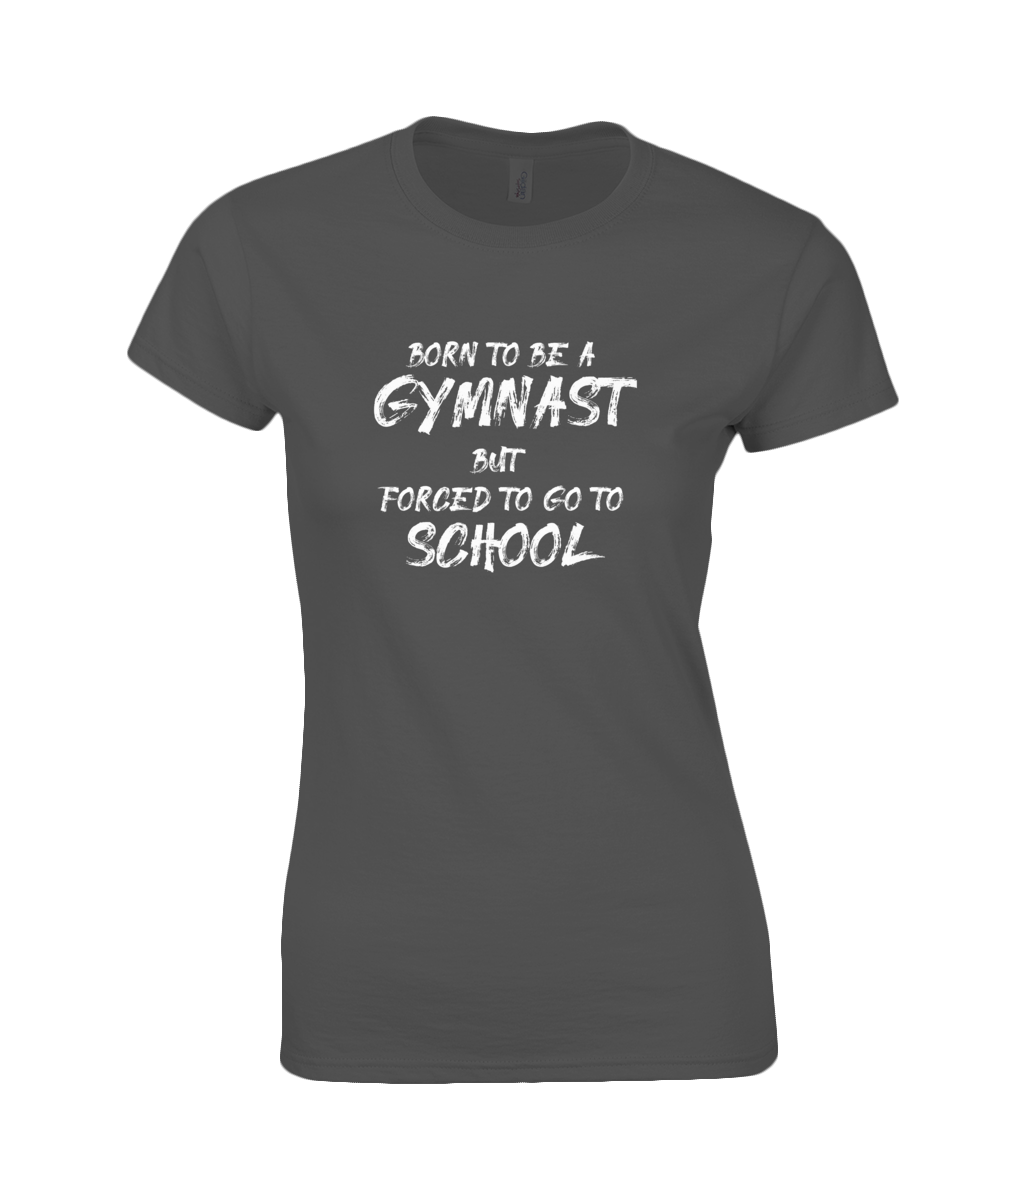 CIP: Born to be a Gymnast Ladies Fitted T-Shirt